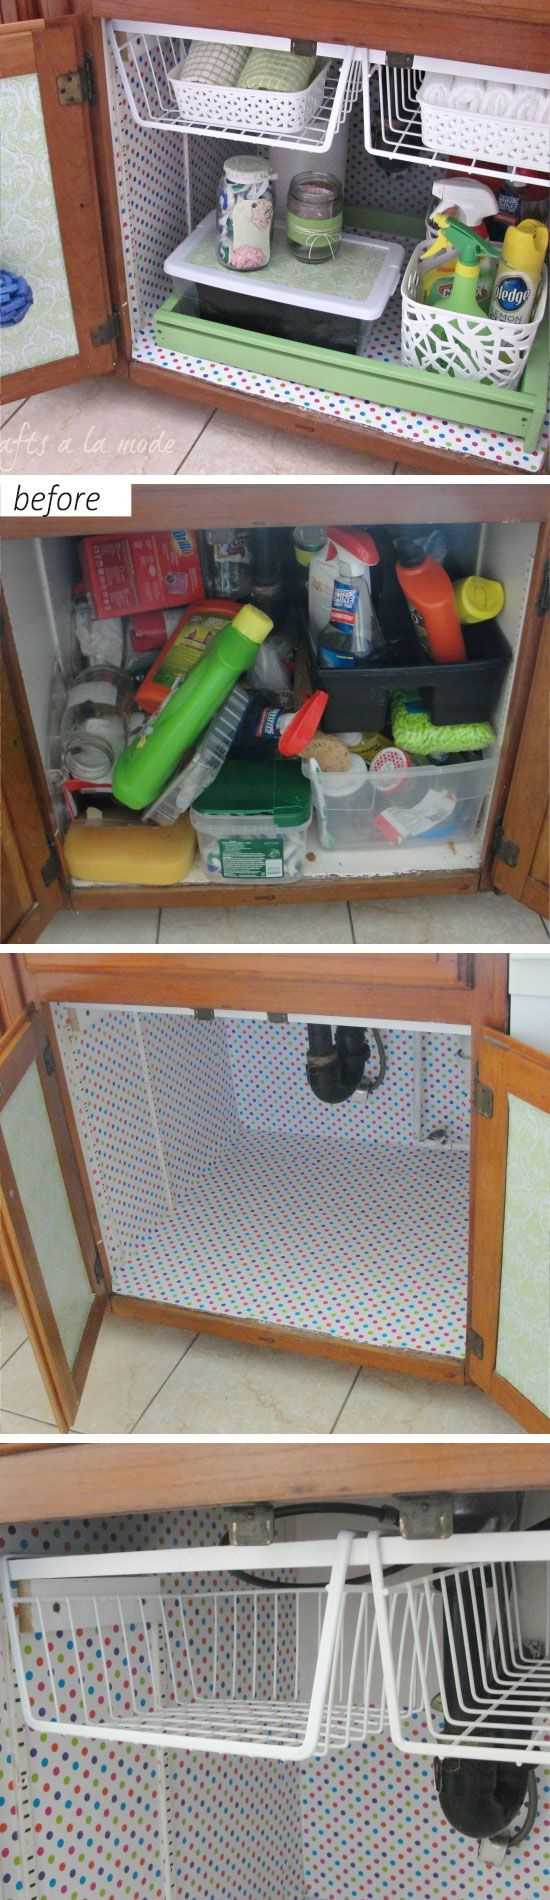 Bathroom storage ideas under sink - 1000 Ideas About Under Bathroom Sink Storage On Pinterest Bathroom Sink Storage Bathroom Sink Organization And Bathroom Organisers